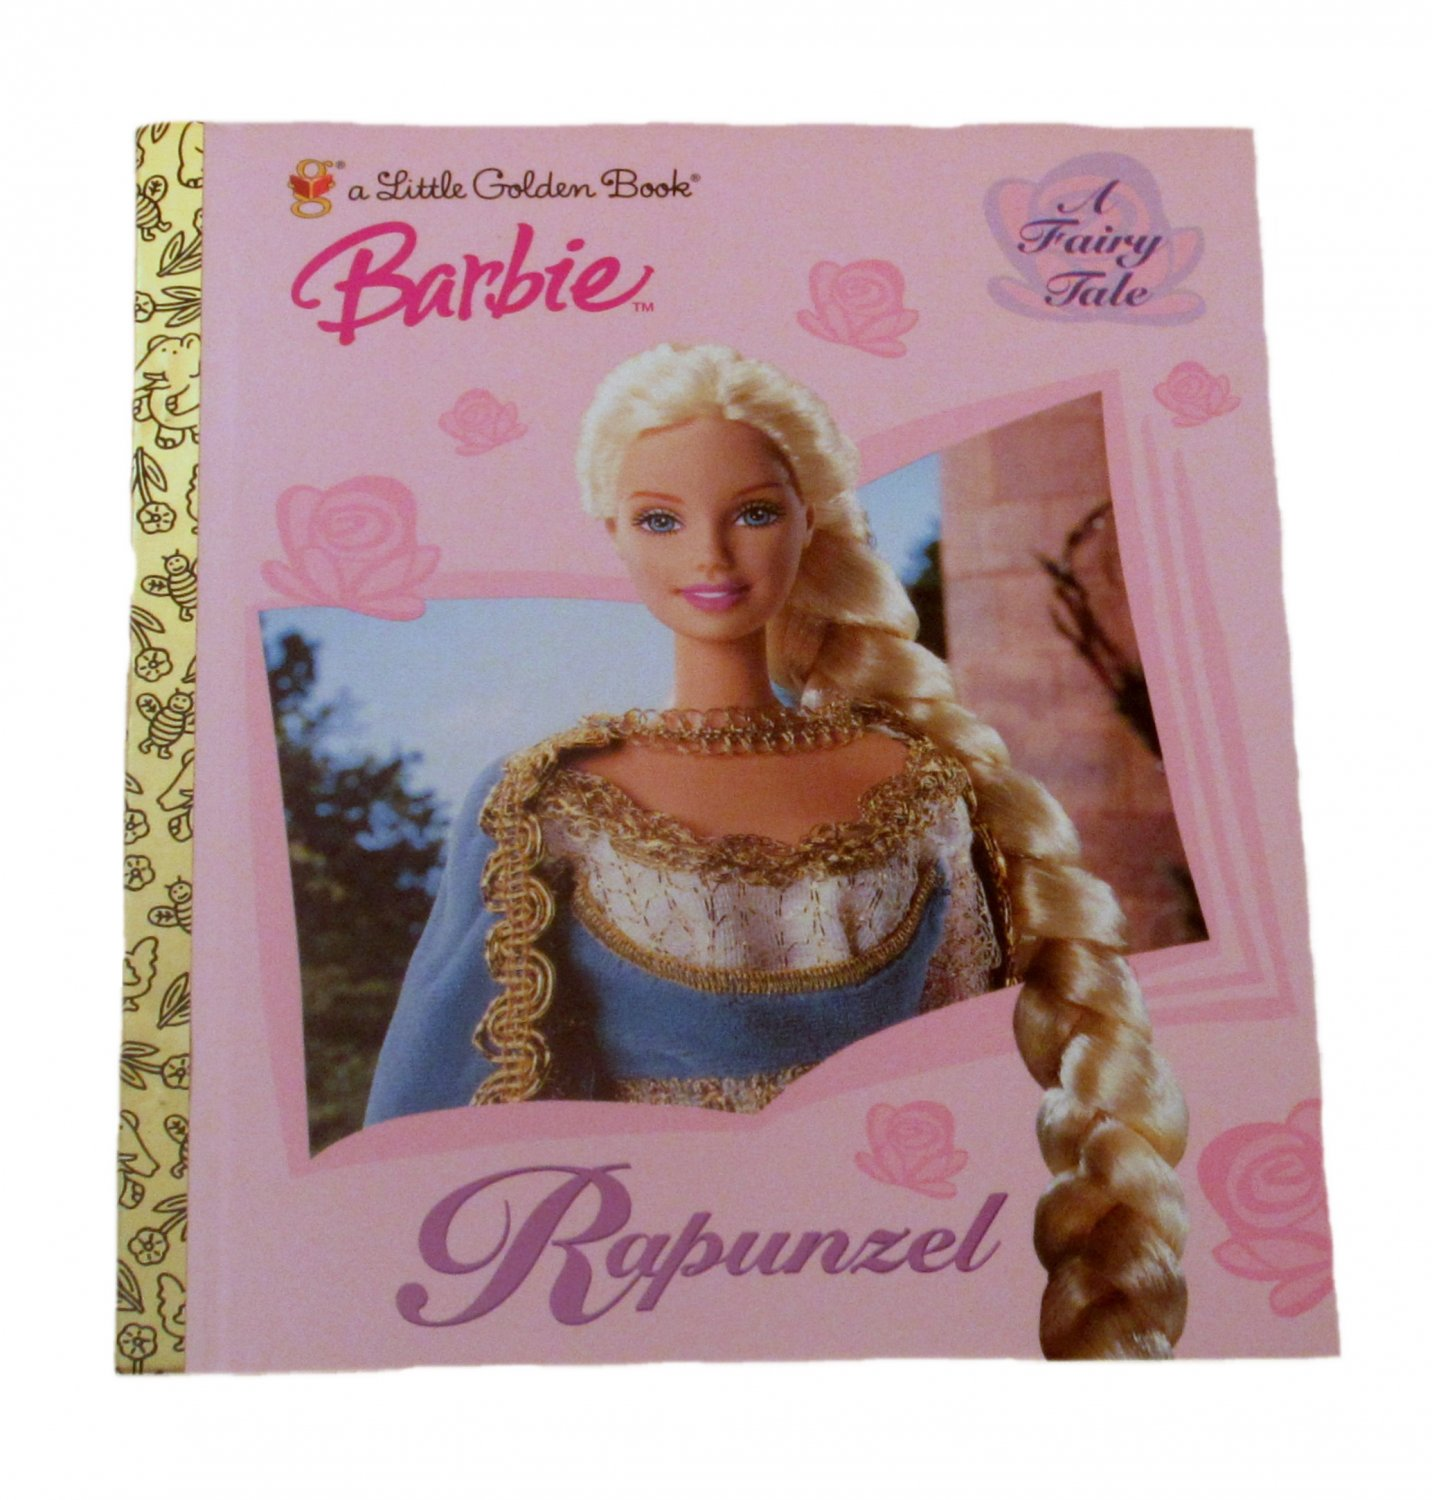 Barbie Rapunzel by Diane Muldrow Little Golden Book 2001